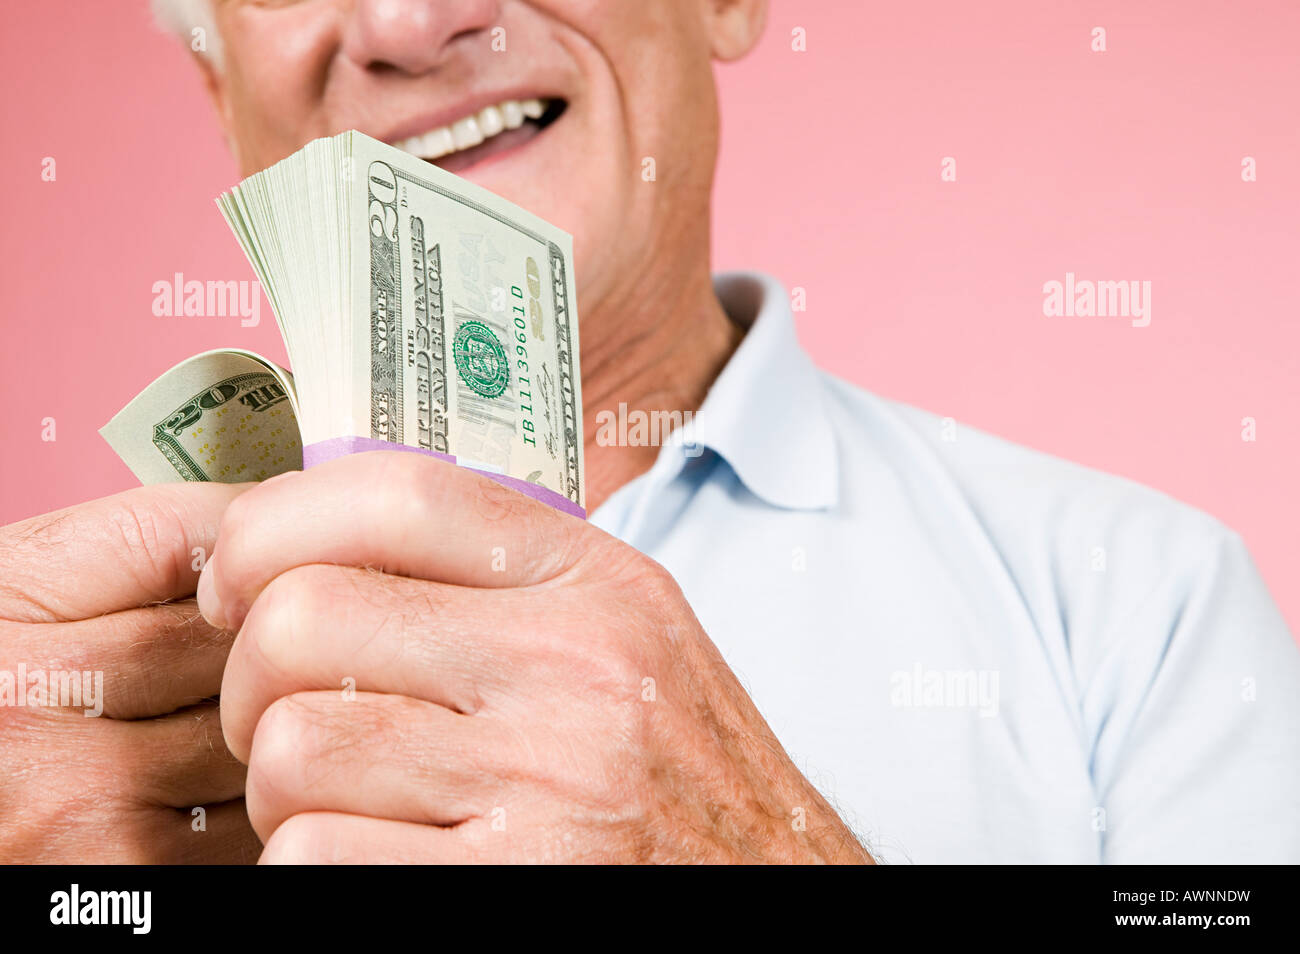 Man with bundle of banknotes - Stock Image